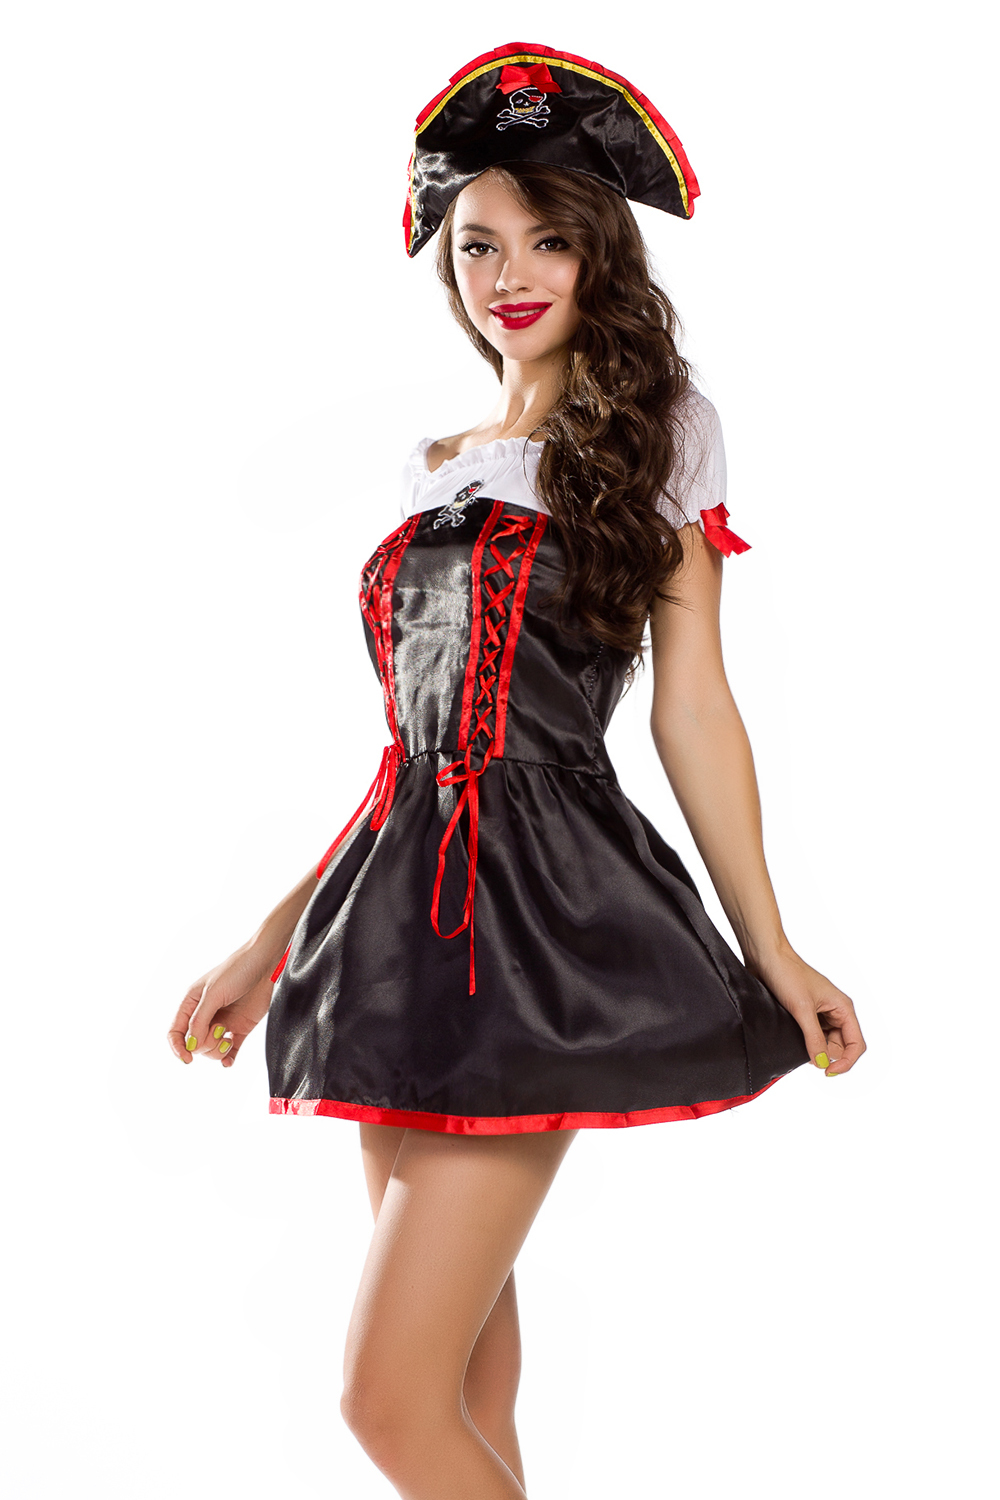 new 2014 womens adult classic halloween costumes sexy petite pirate costume fancy party dress roleplay costume in anime costumes from novelty special use